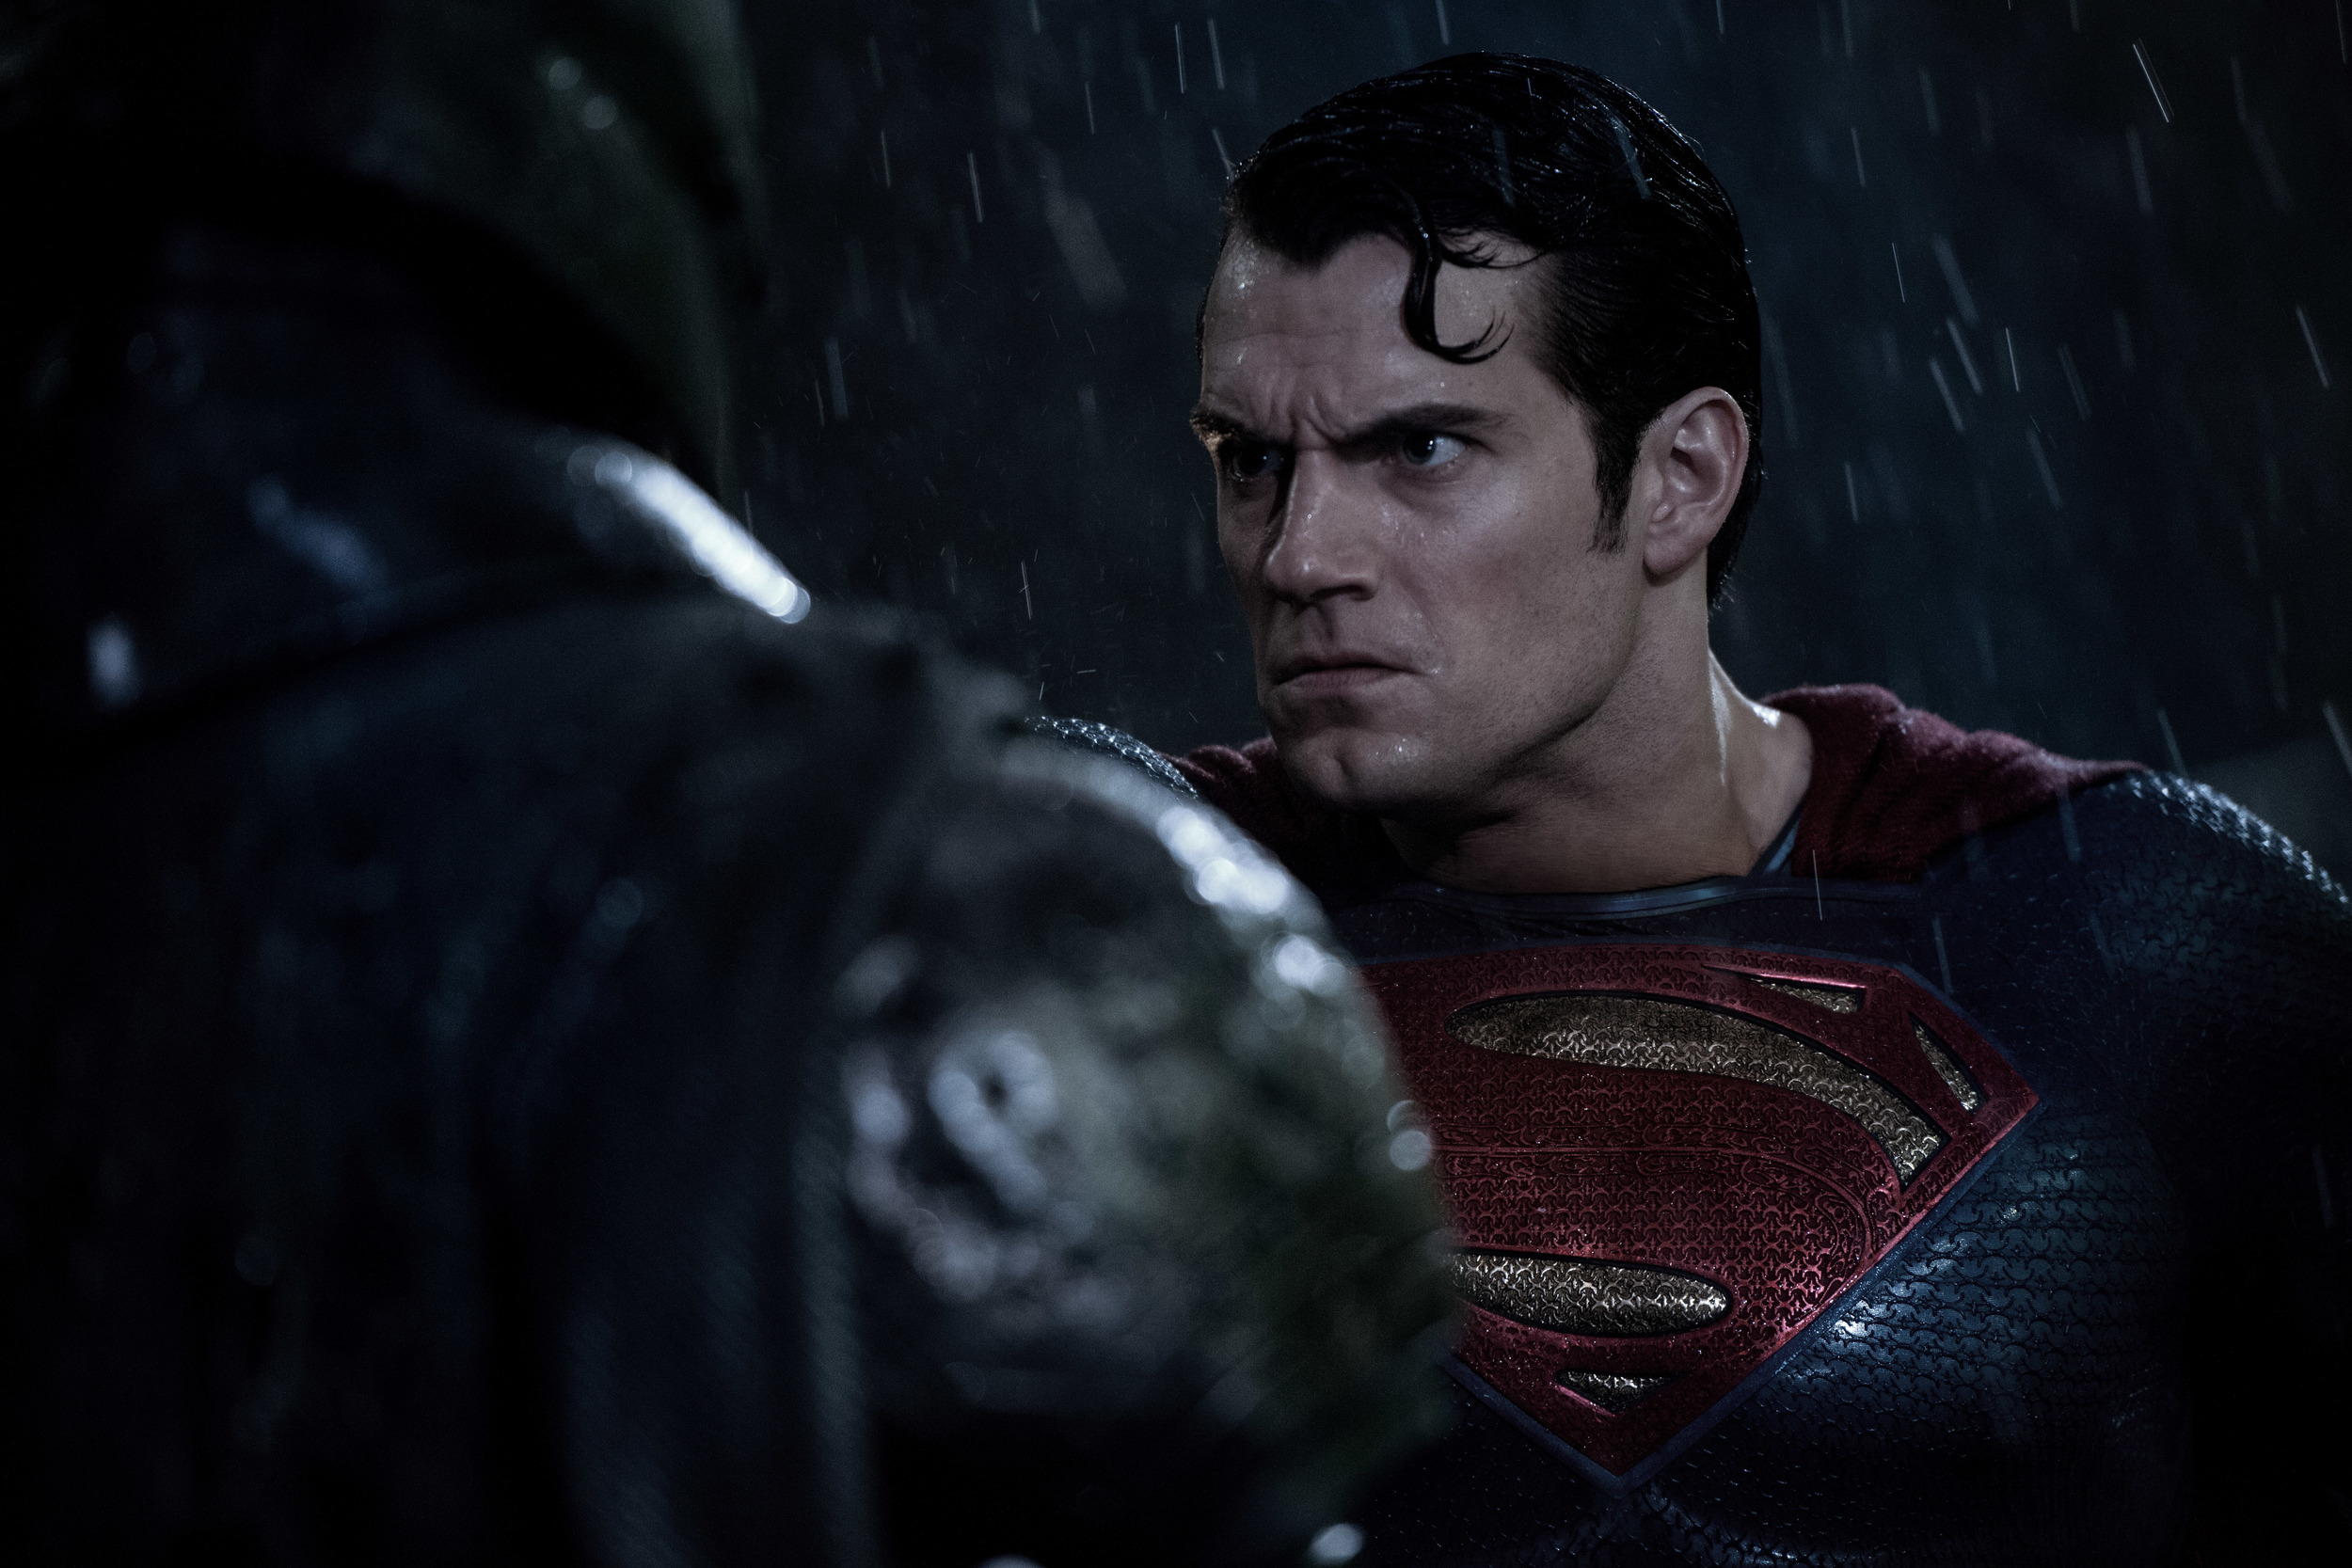 henry-cavill-batman-v-superman-dawn-of-justice-image.jpg